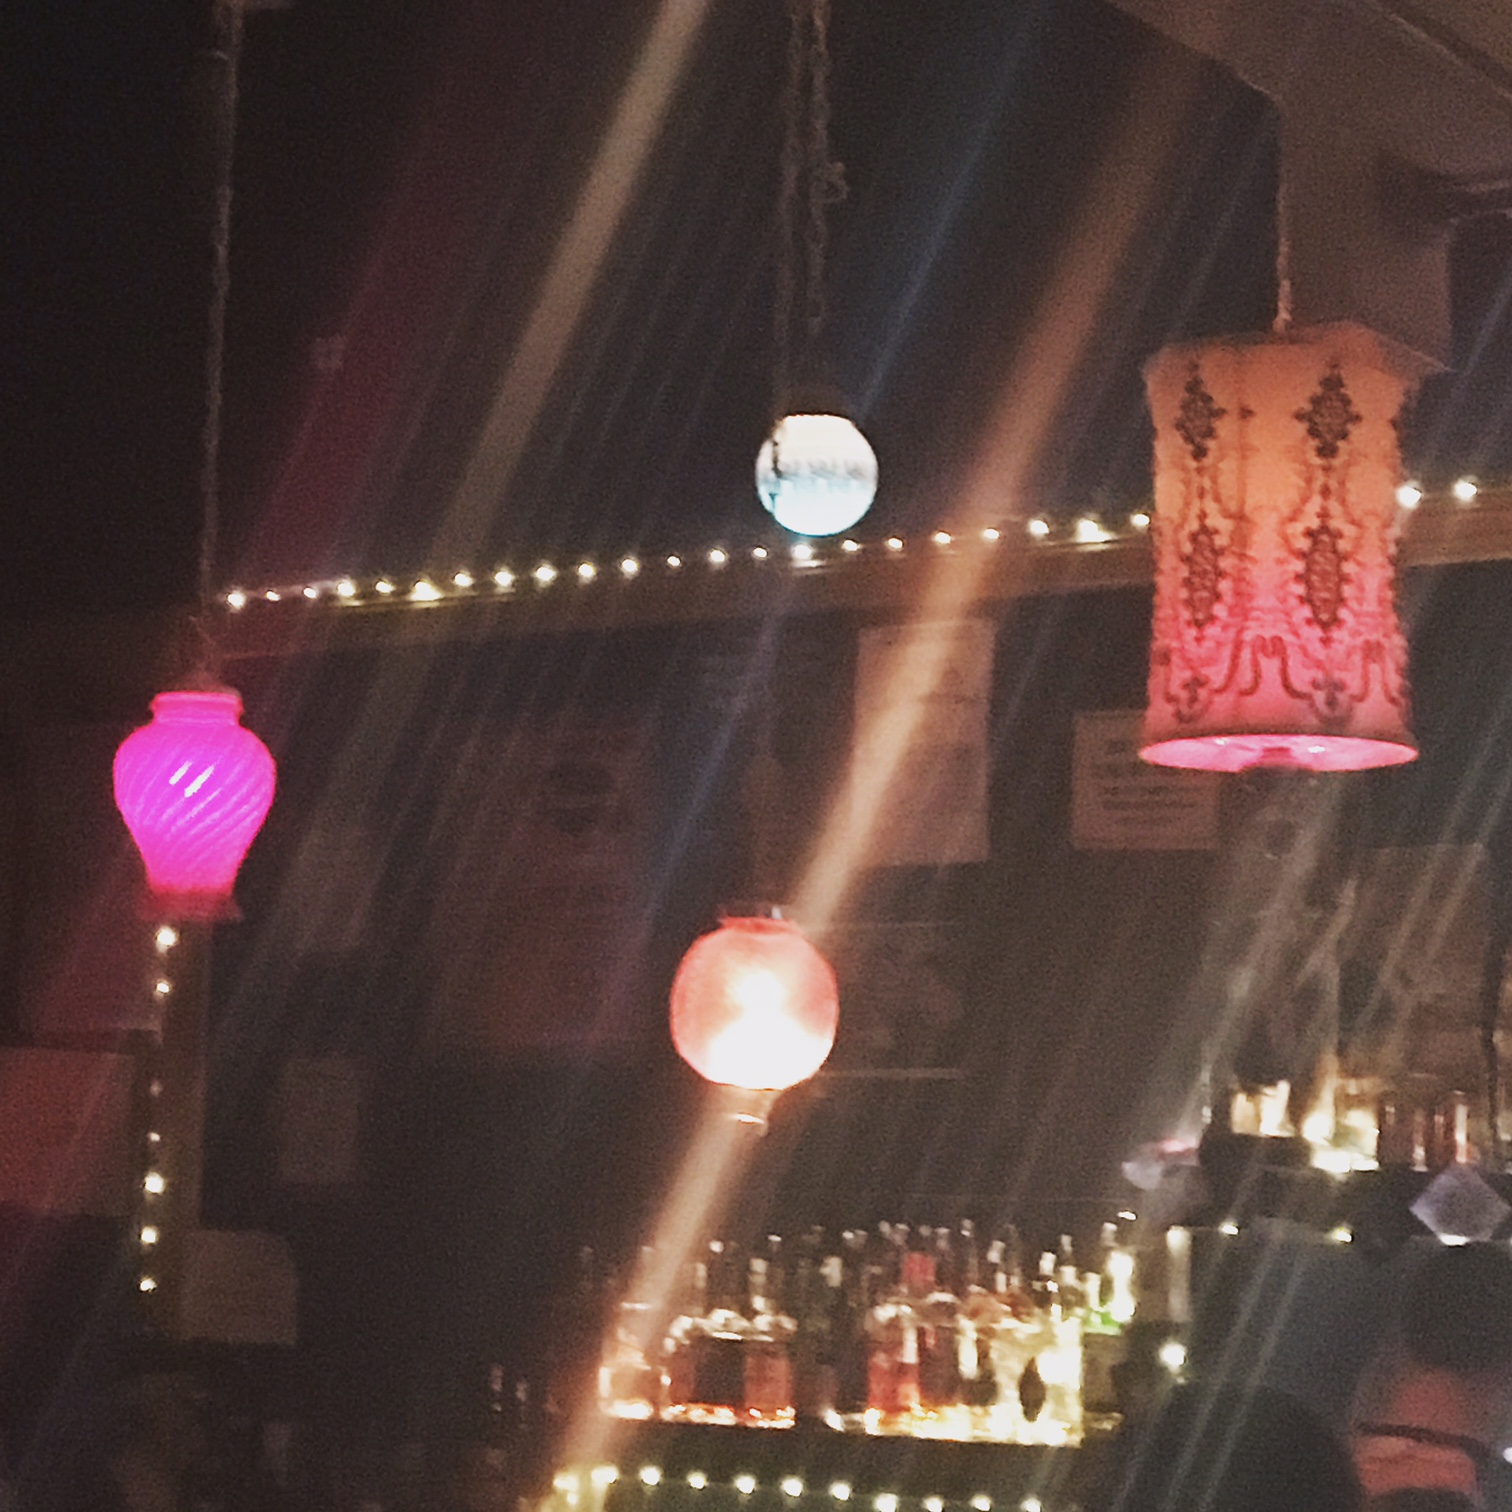 Sunnyvale's enviable collection of vintage lamps that hang above their nicely-sized bar.